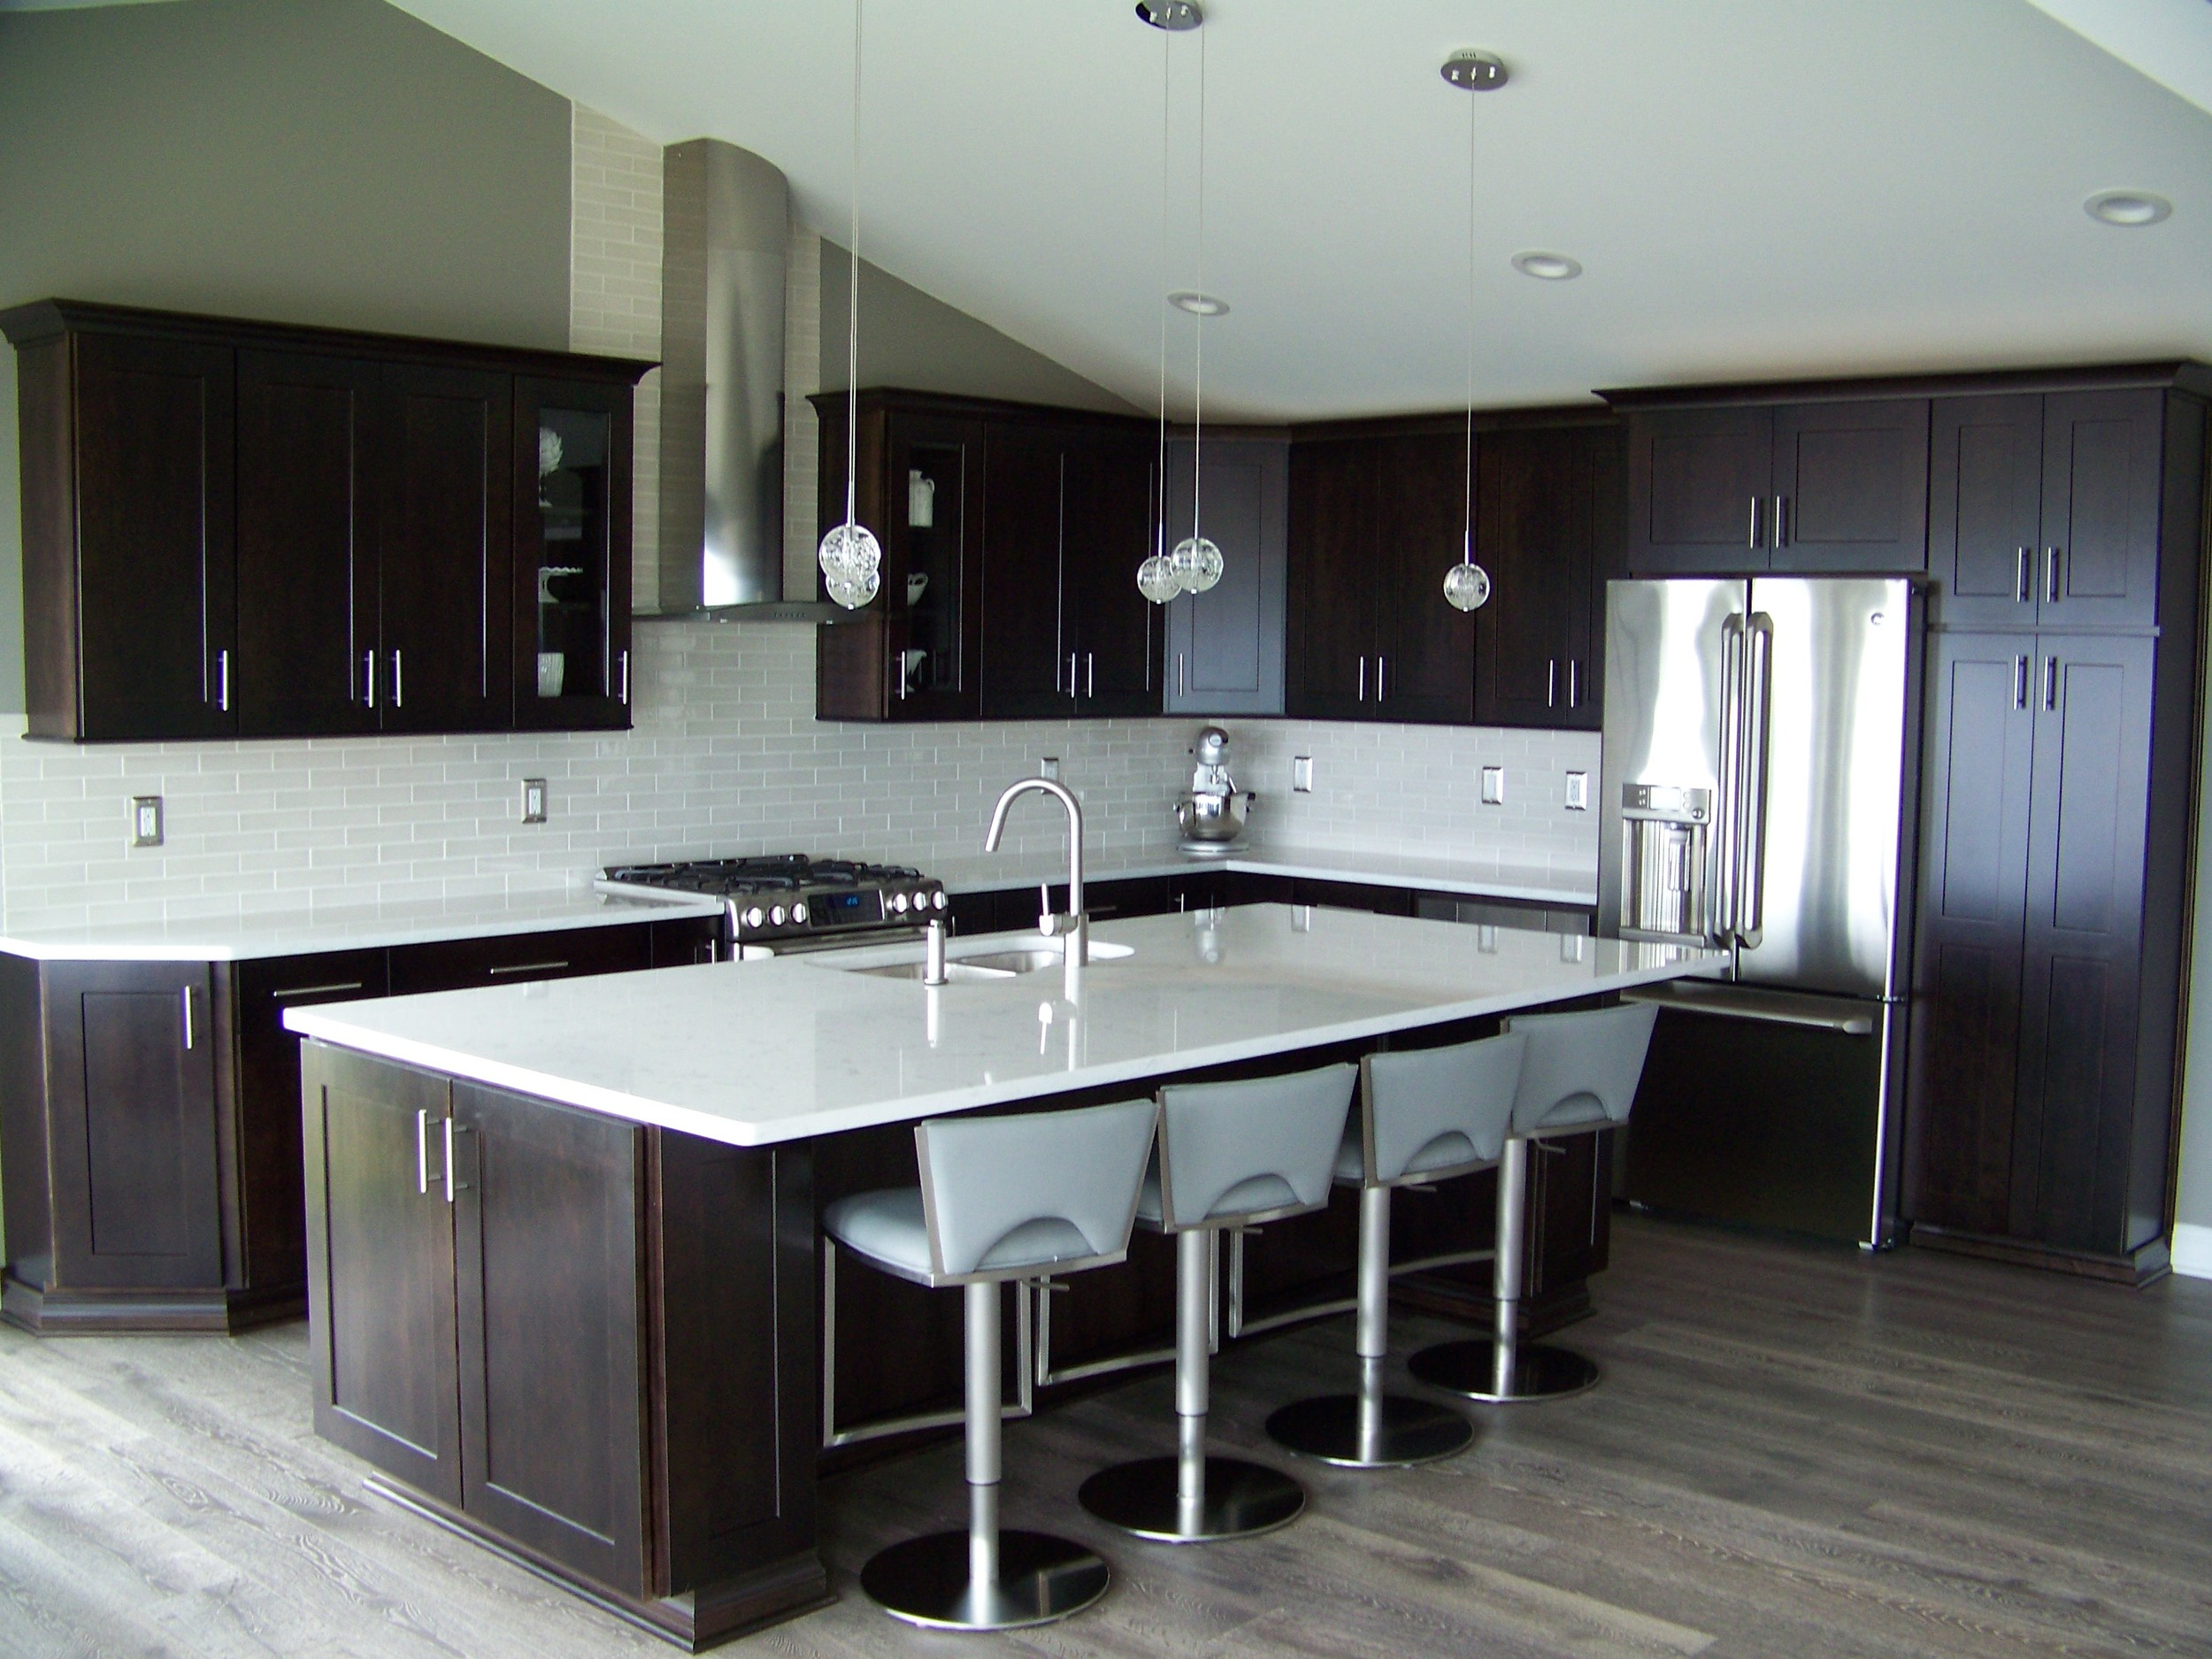 The Best Kitchen Ever Recent Remodel in Hilton NY  D